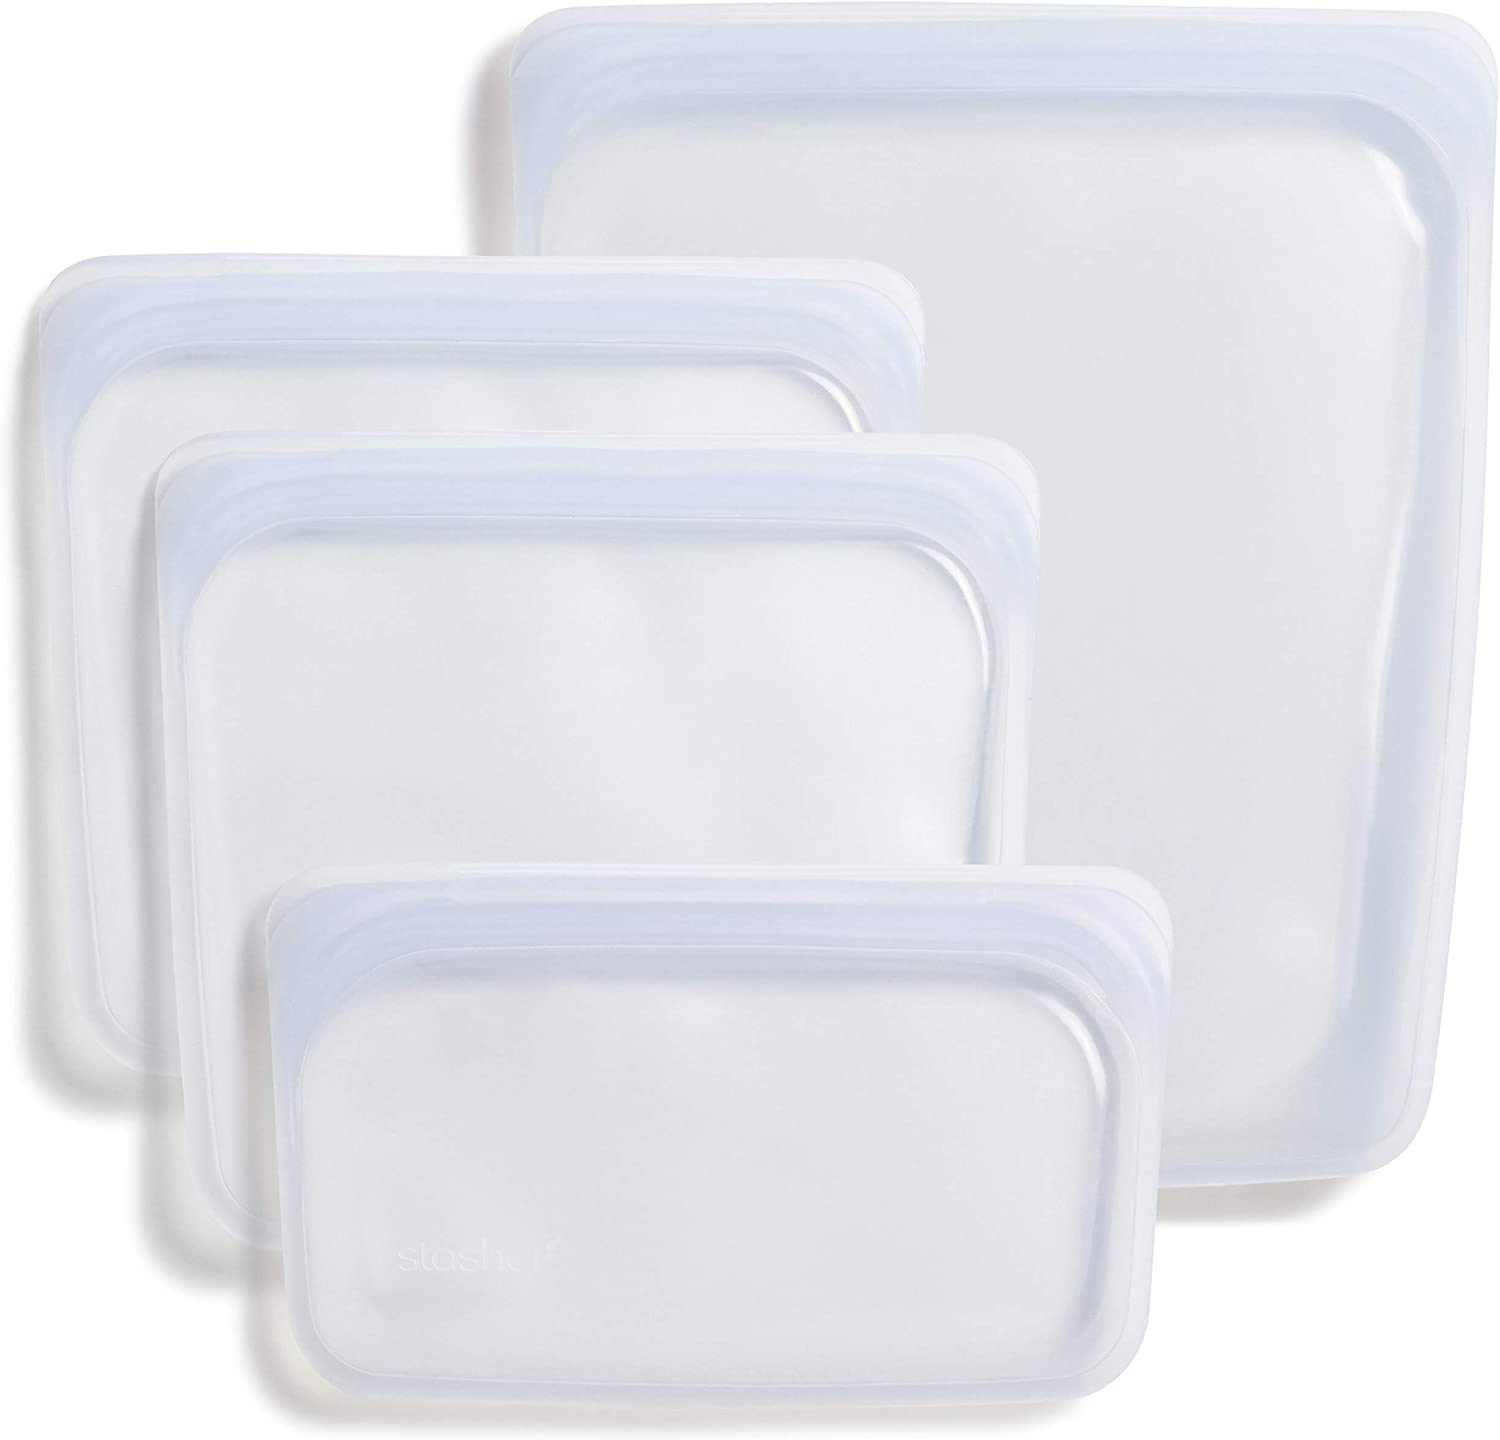 Re-usable silicone bags